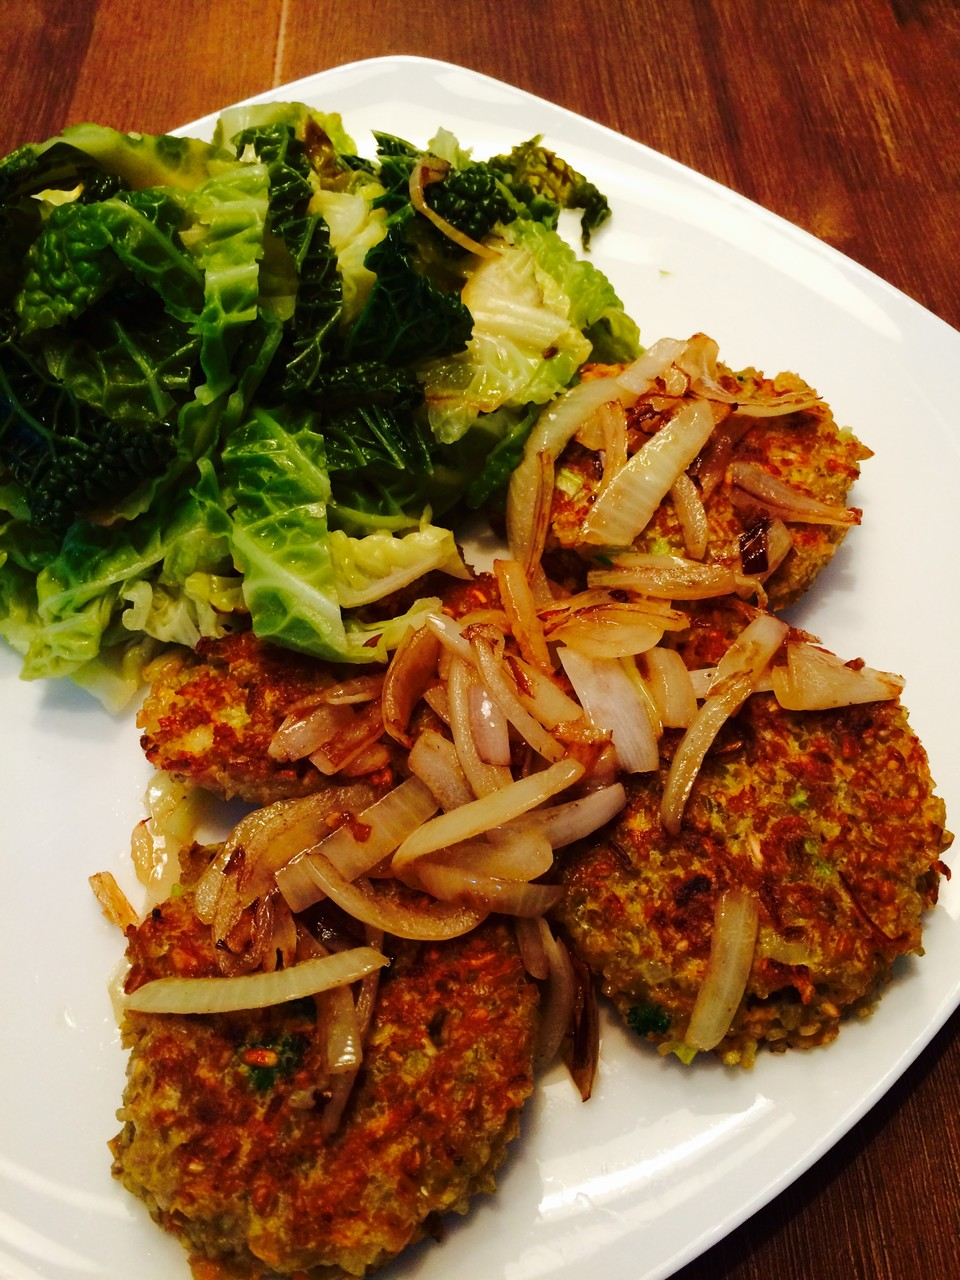 Green spelt patties with savoy cabbage - mycleanlife